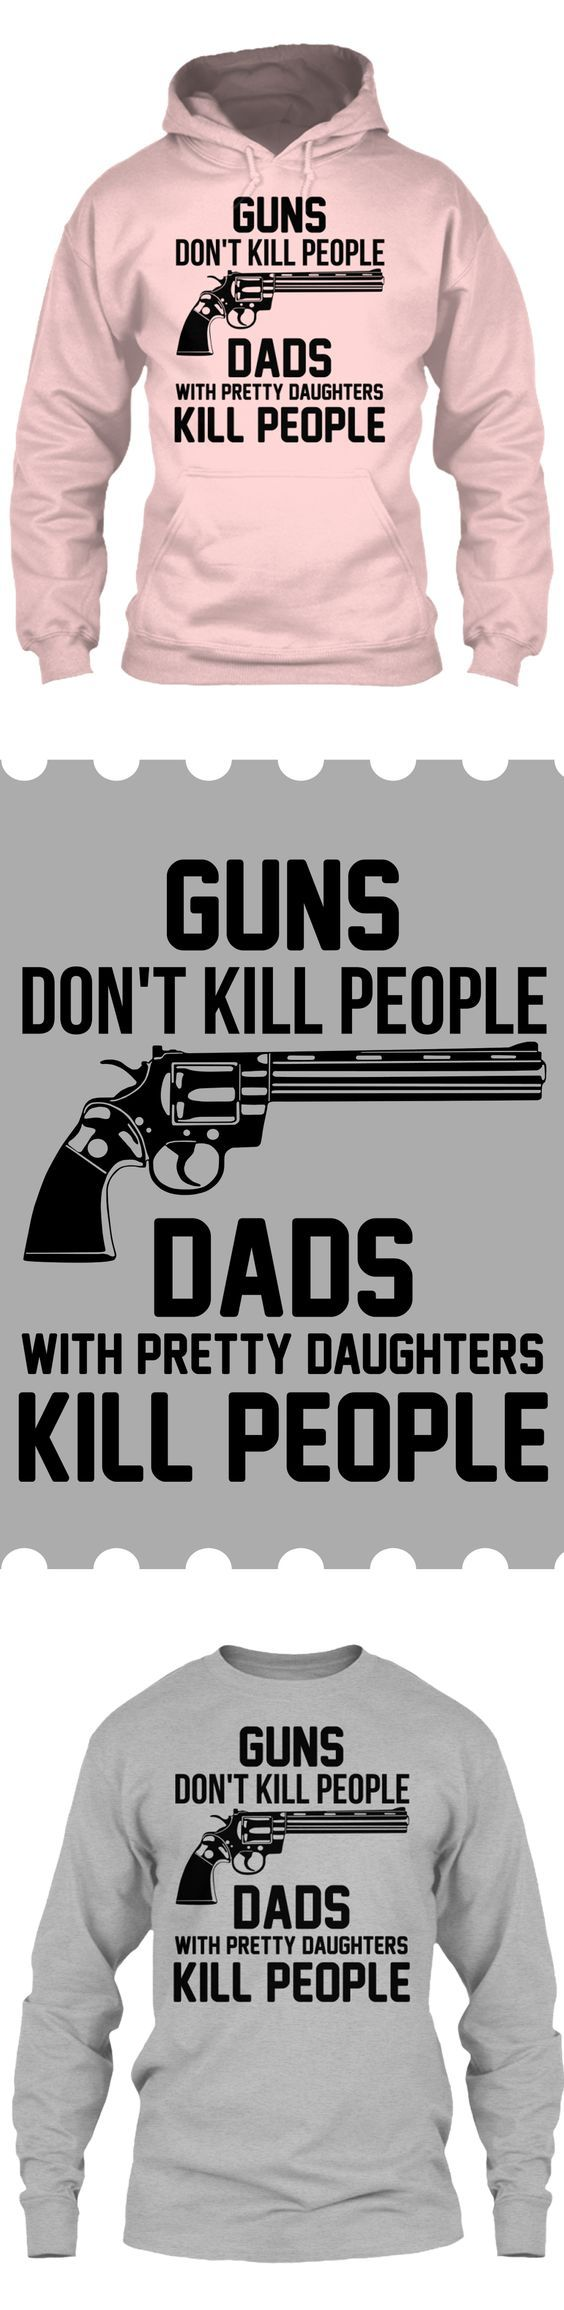 Guns Don't Kill People - Get this limited edition Long Sleeves and Hoodies just in time for the holidays! Only 2 days left for FREE SHIPPING, click to buy now!